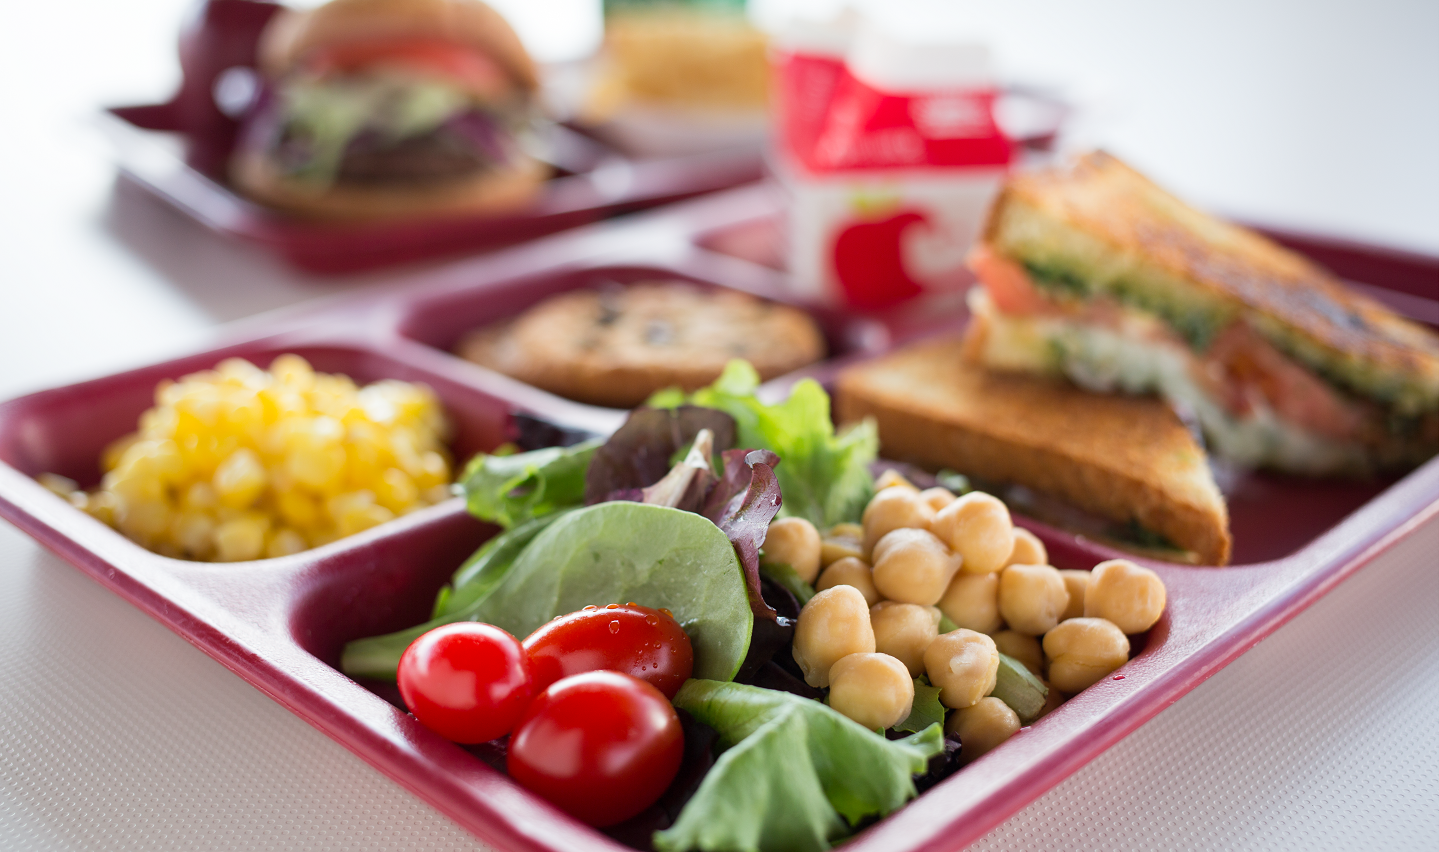 Lunch-Packing 101: Tips and Tricks from a Mom and RD